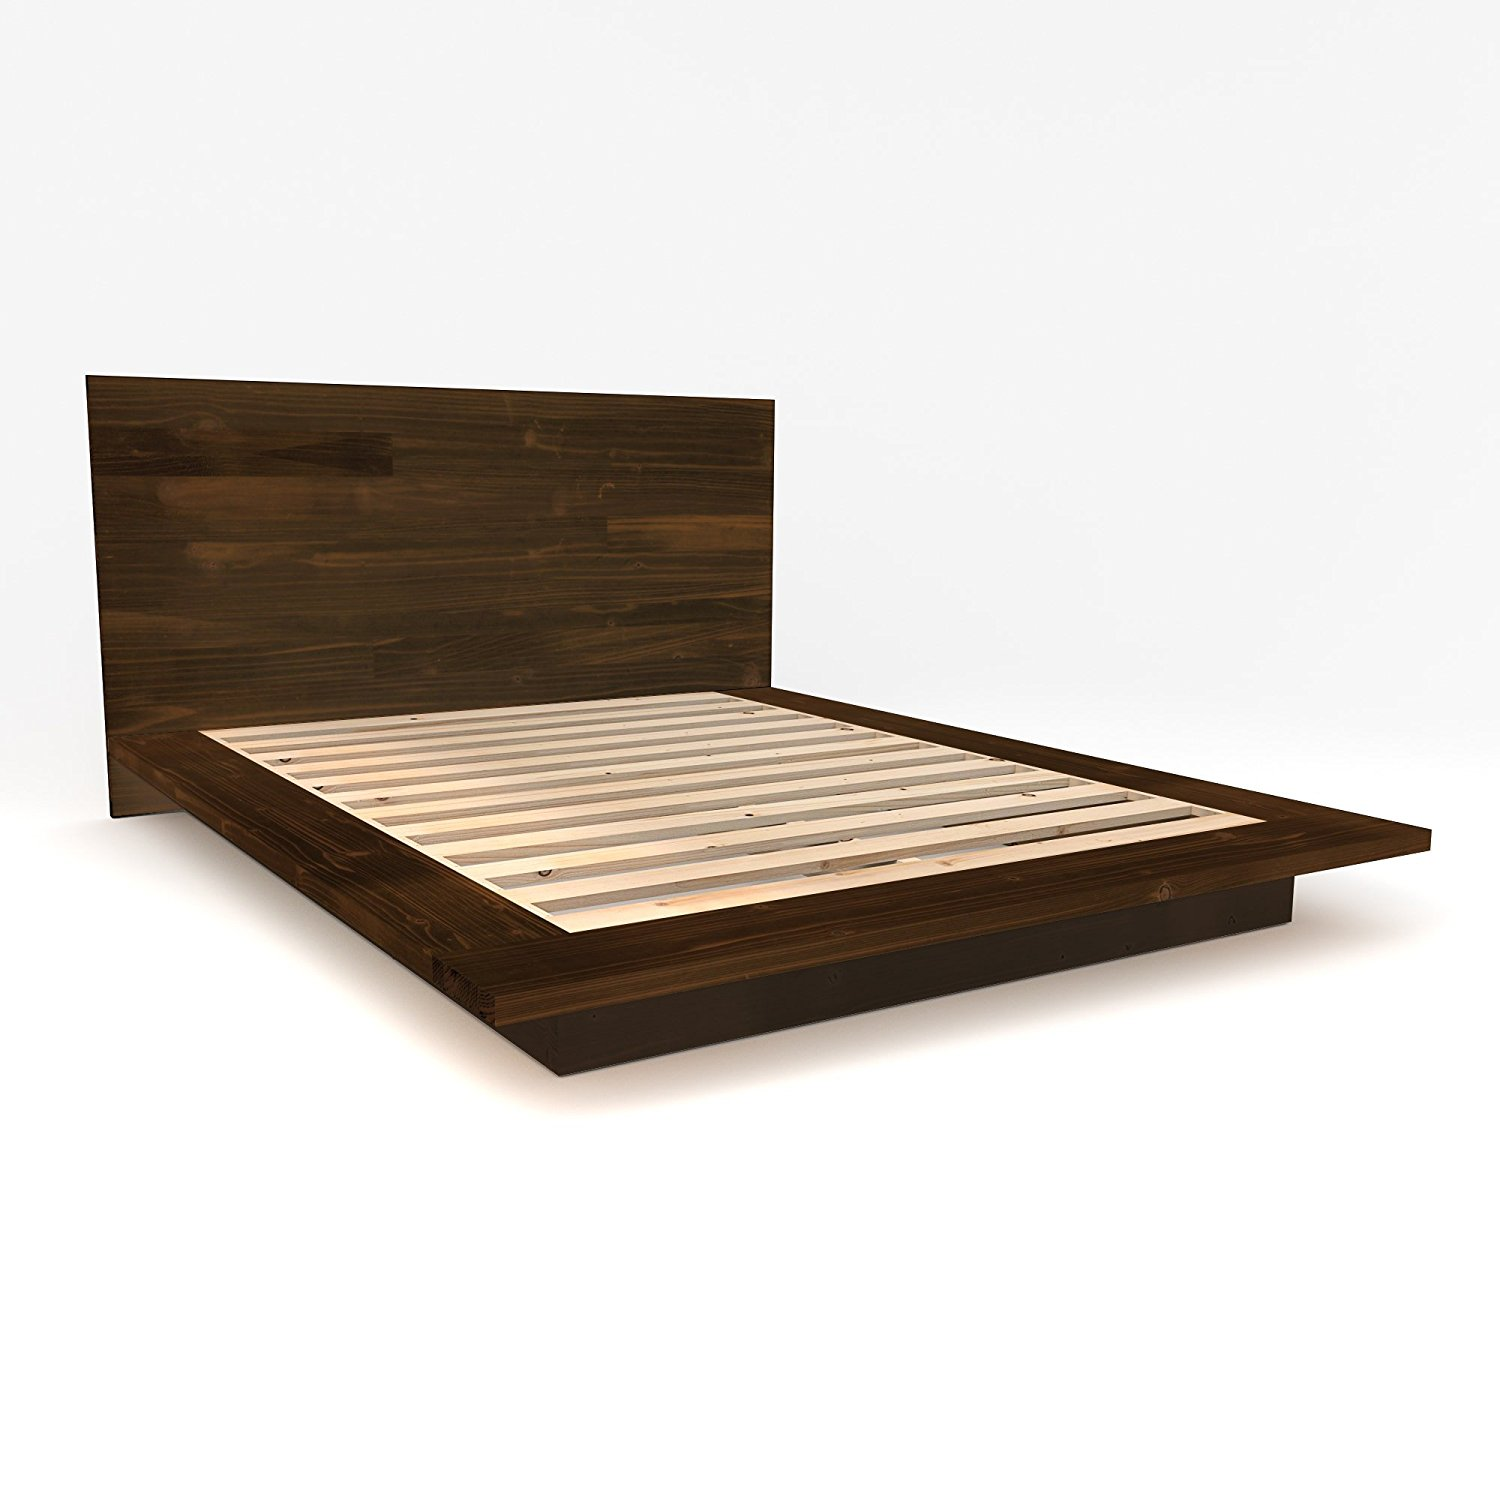 Cheap Floating Bed Frame Find Floating Bed Frame Deals On Line At Alibaba Com